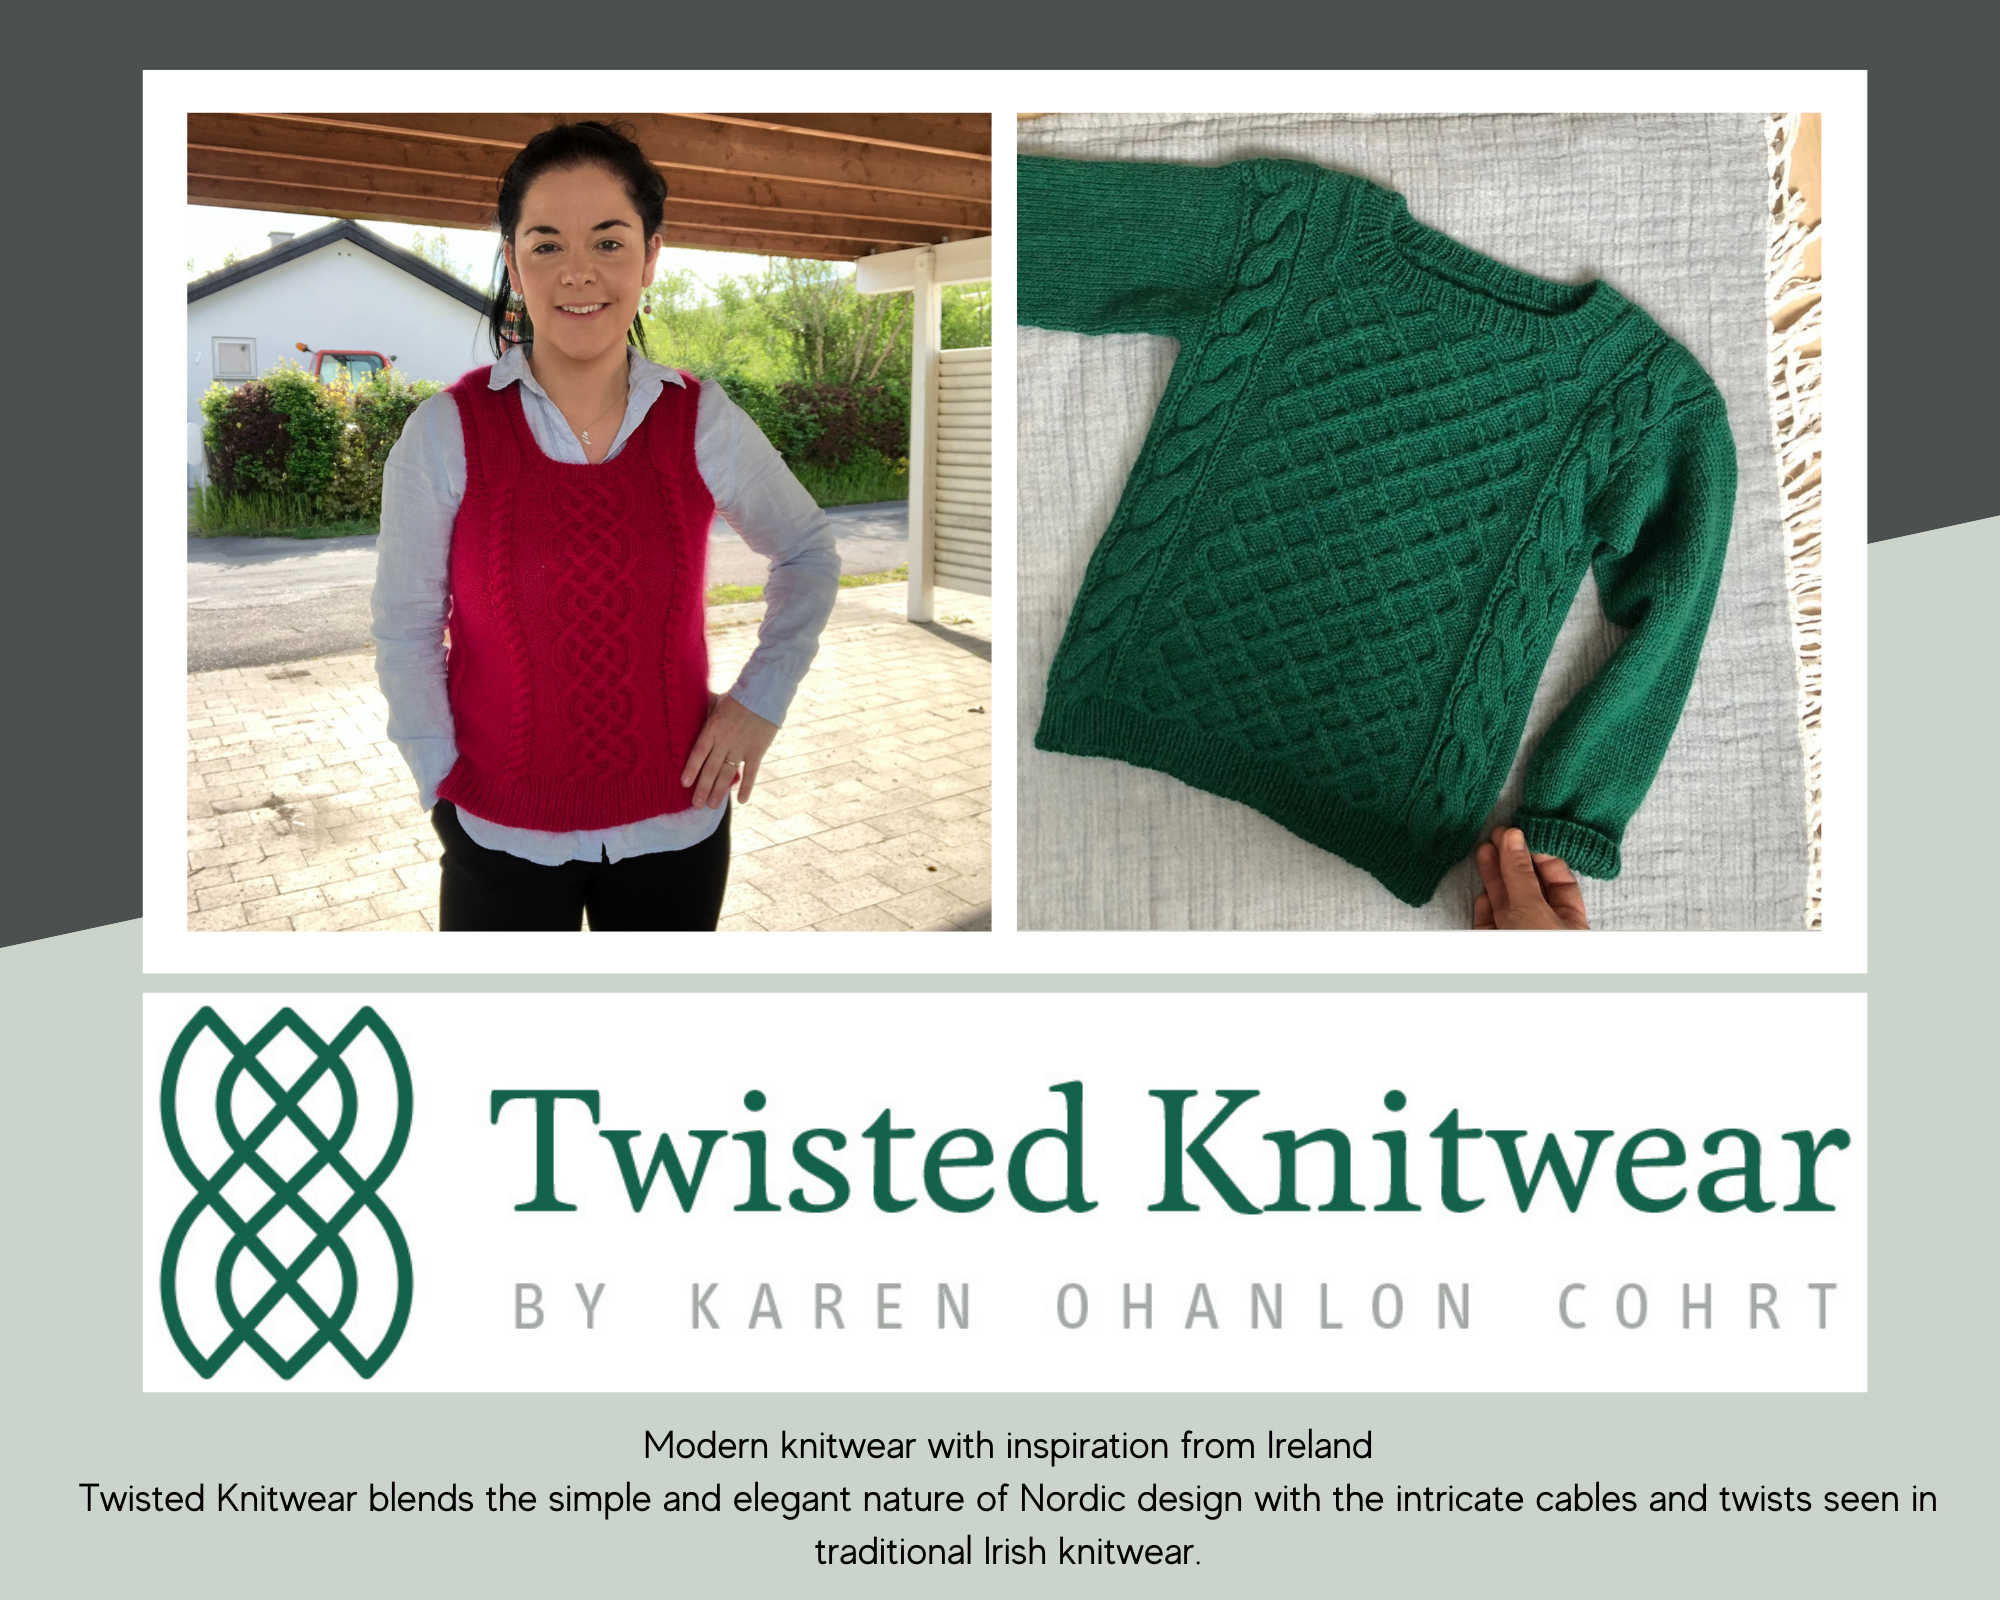 Modern knitwear with inspiration from Ireland Twisted Knitwear is the journey of Karen OHanlon Cohrt an Irish woman 1png